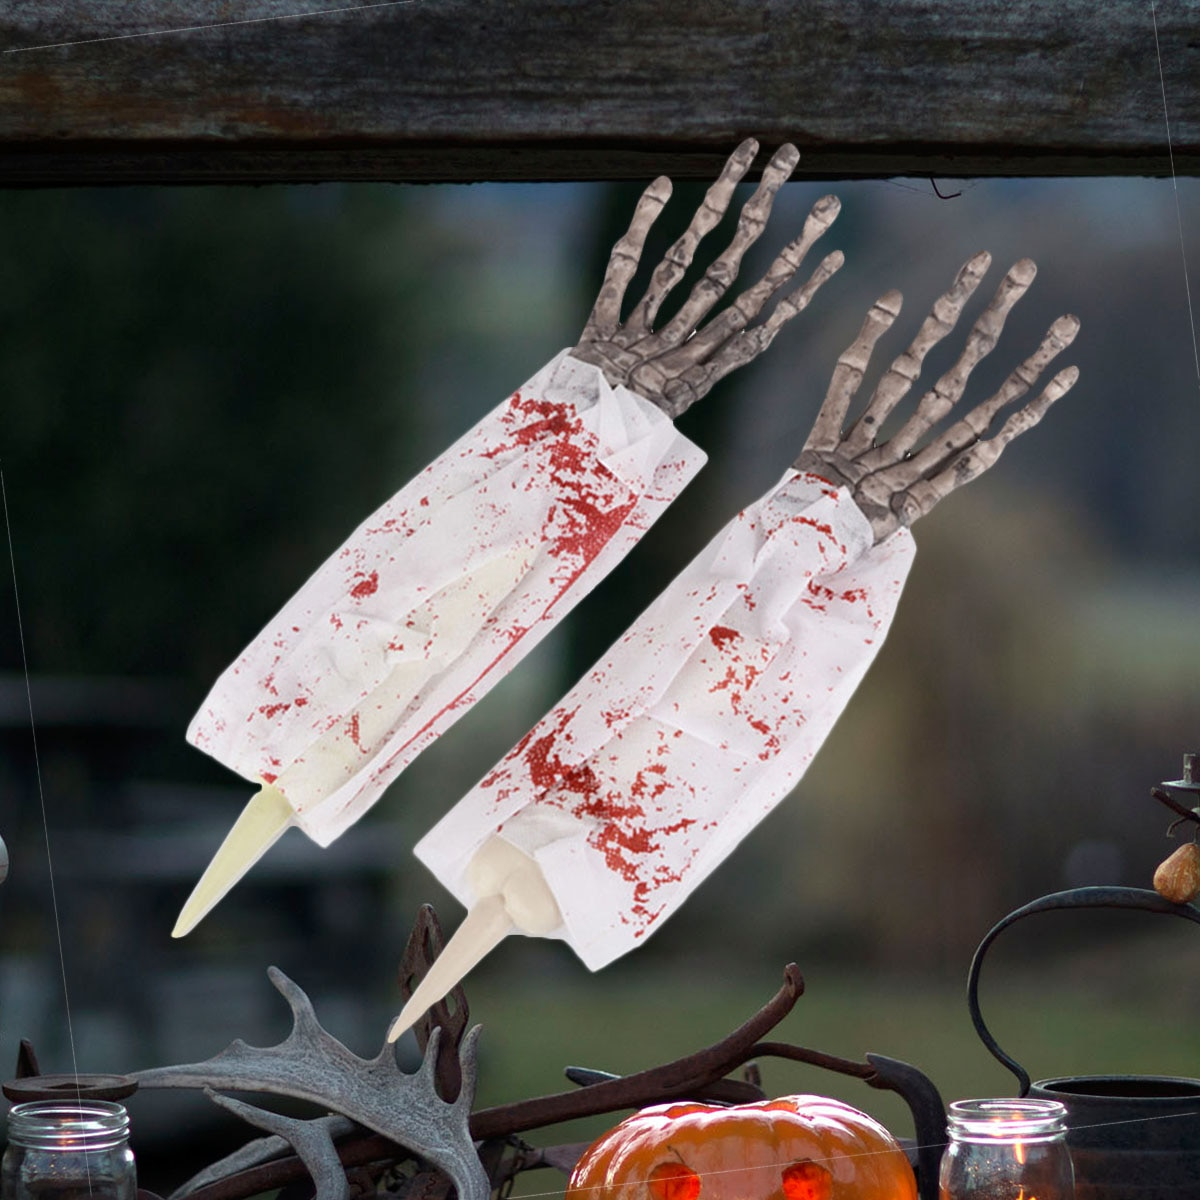 1 Pair Realistic Bloody Hands Fake Creepy Arms Horror Decorations Props Prank for Club Pub Haunted House (Grey Hands)